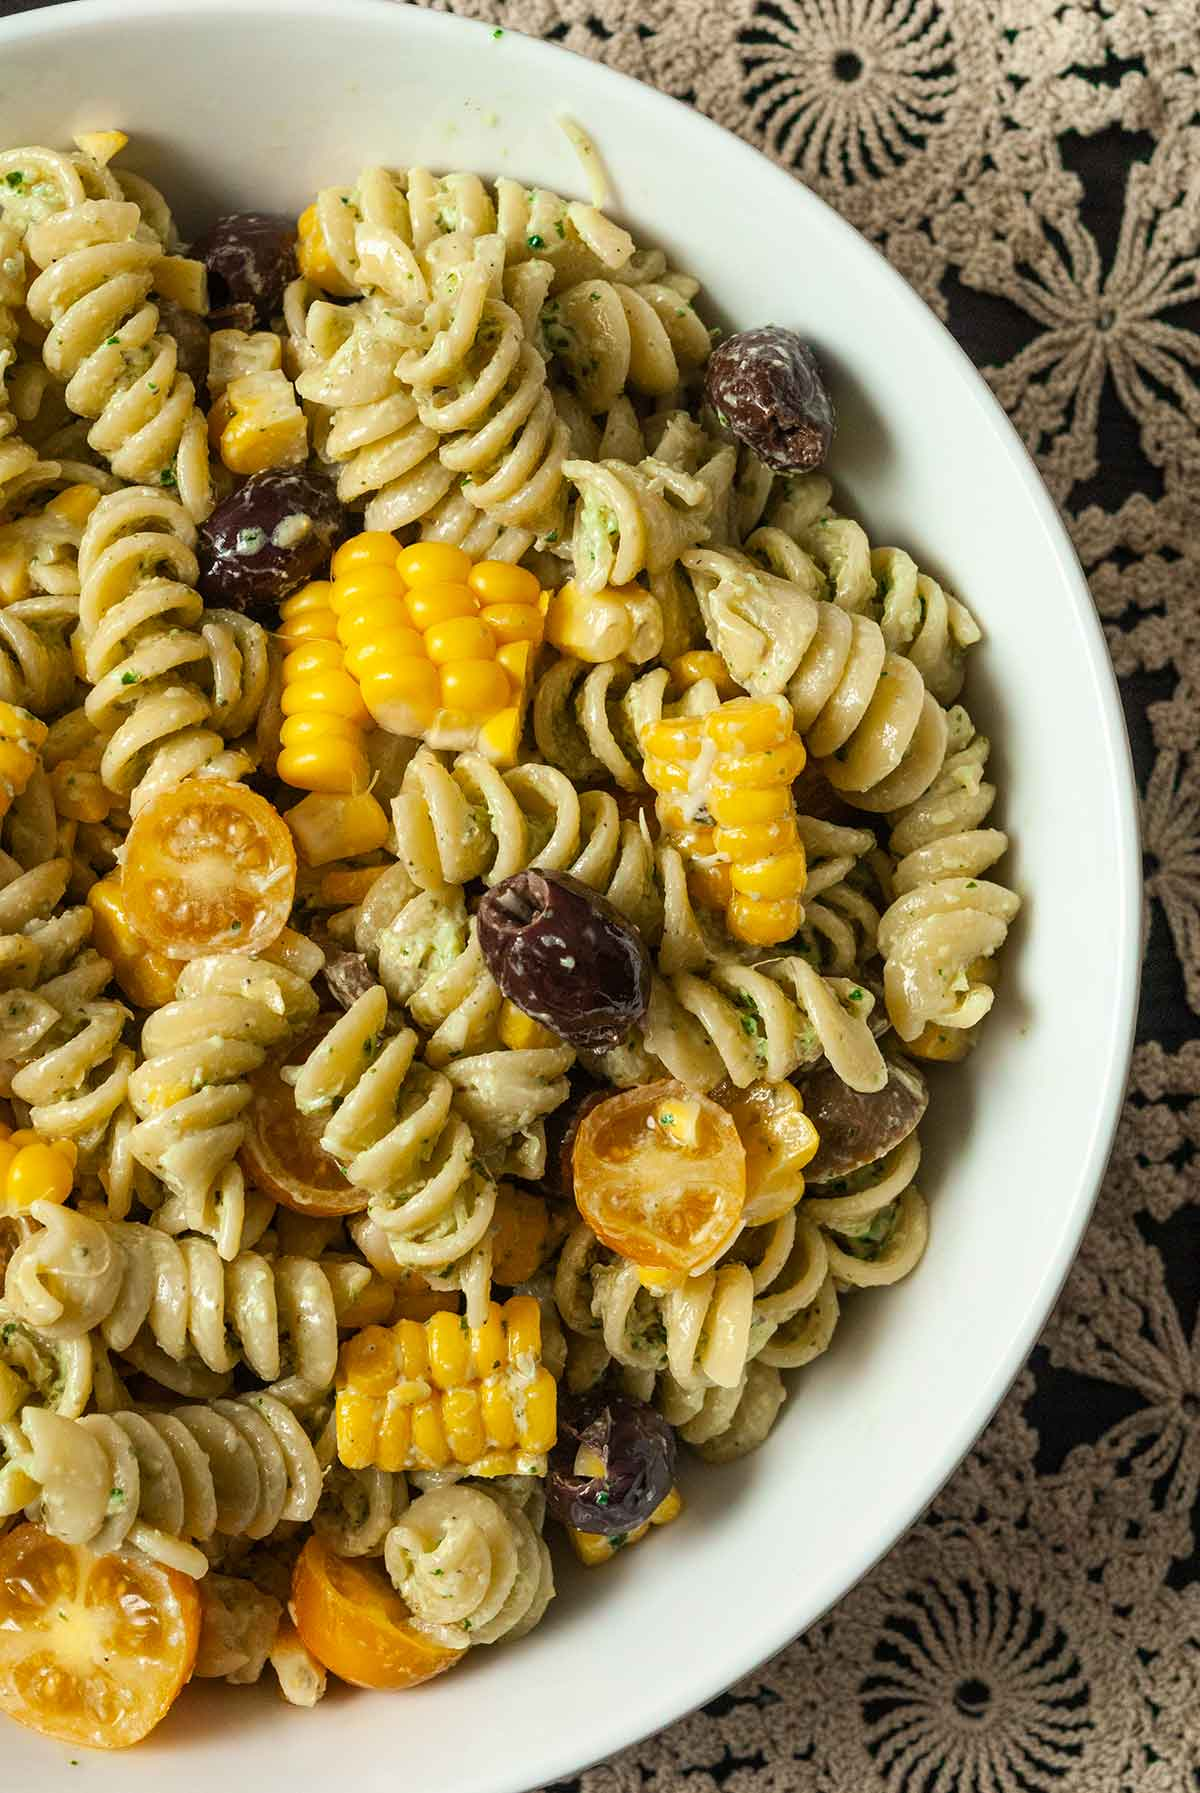 A bowl of pasta salad with fresh corn, tomatoes and olives on a lace tablecloth.